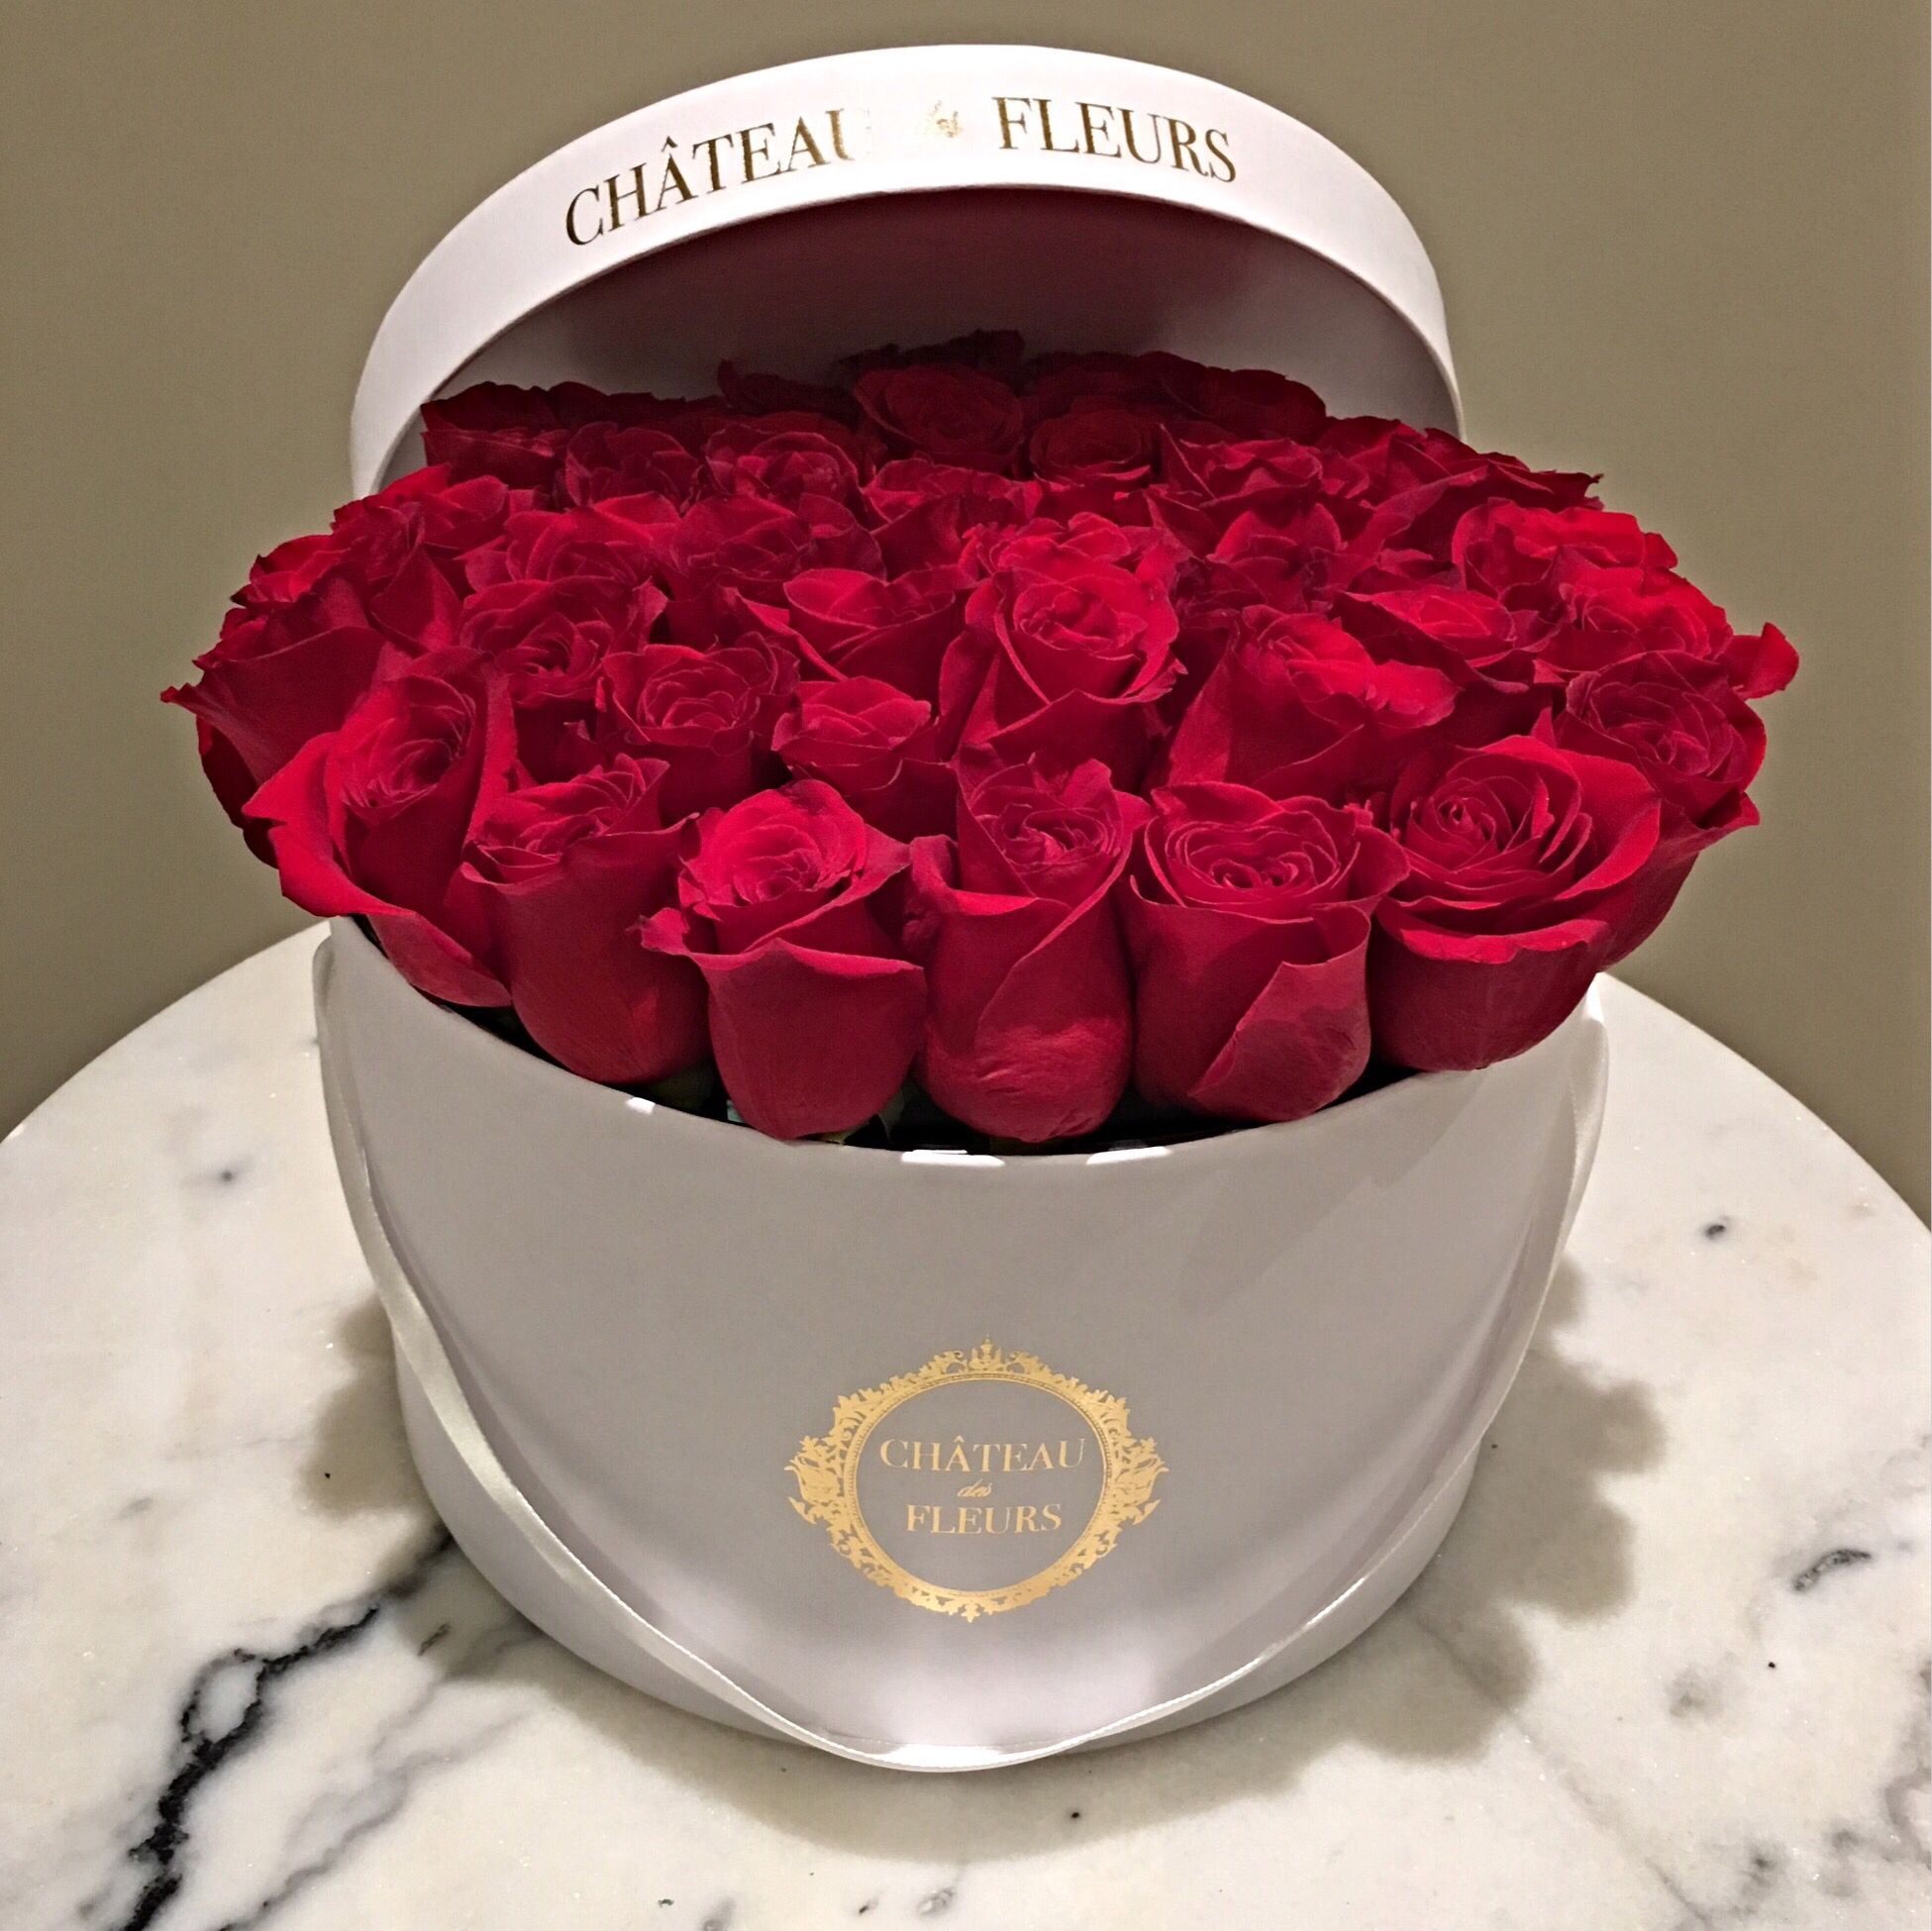 Signature Round Box Chateau Des Fleurs Rose Collection Flowers In A Box Boxed Flowers Flower Roses Luxury Roma Chateau Des Fleurs Fleurs Fleurs Paris